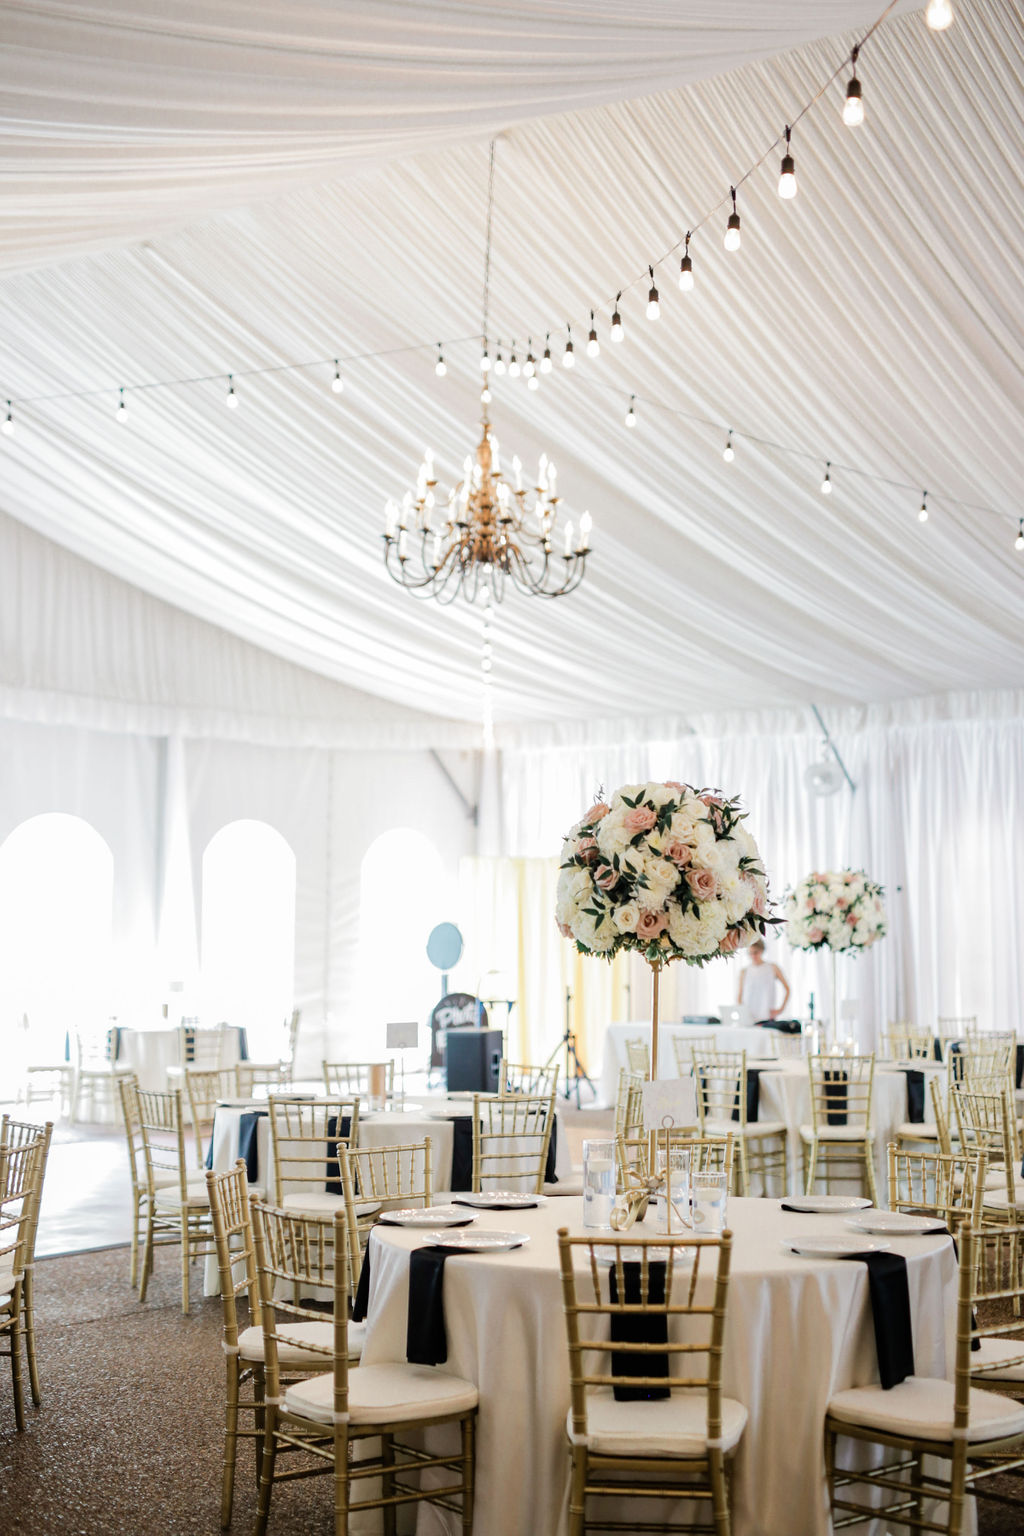 Wedding reception decor for Riverwood Mansion wedding featured on Nashville Bride Guide